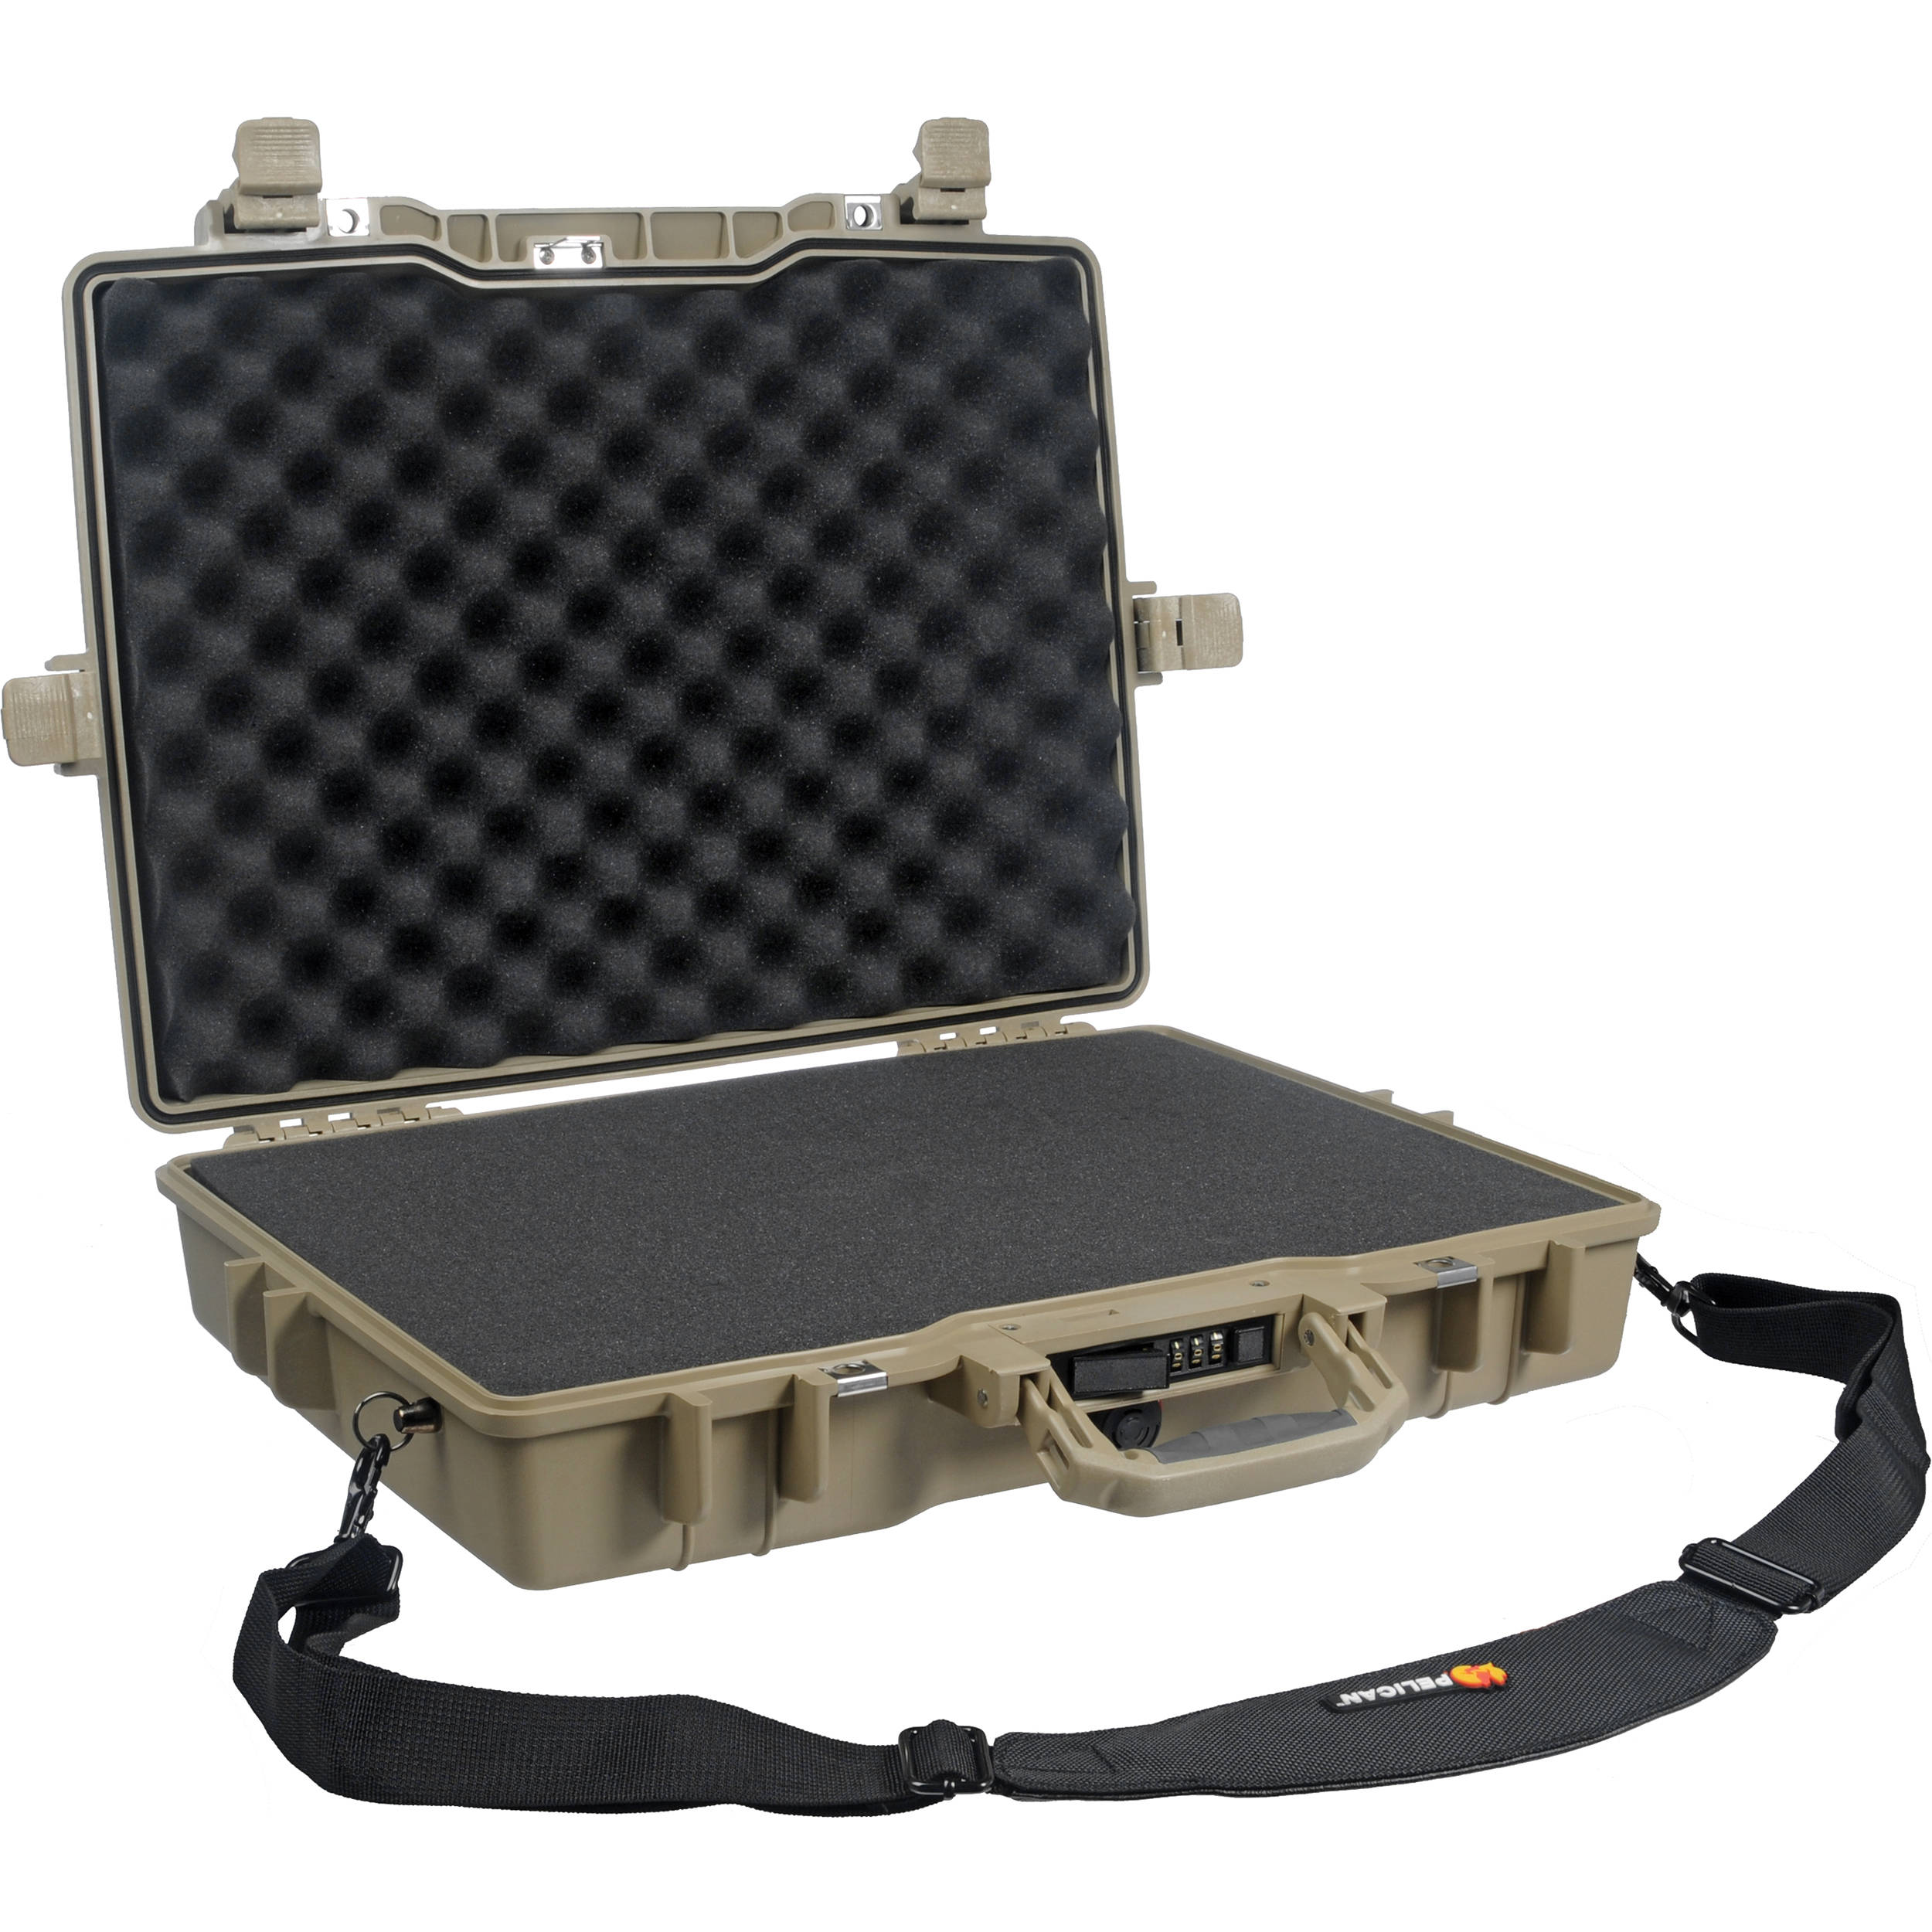 Pelican 1495 Laptop Computer Case with Foam (Desert Tan)